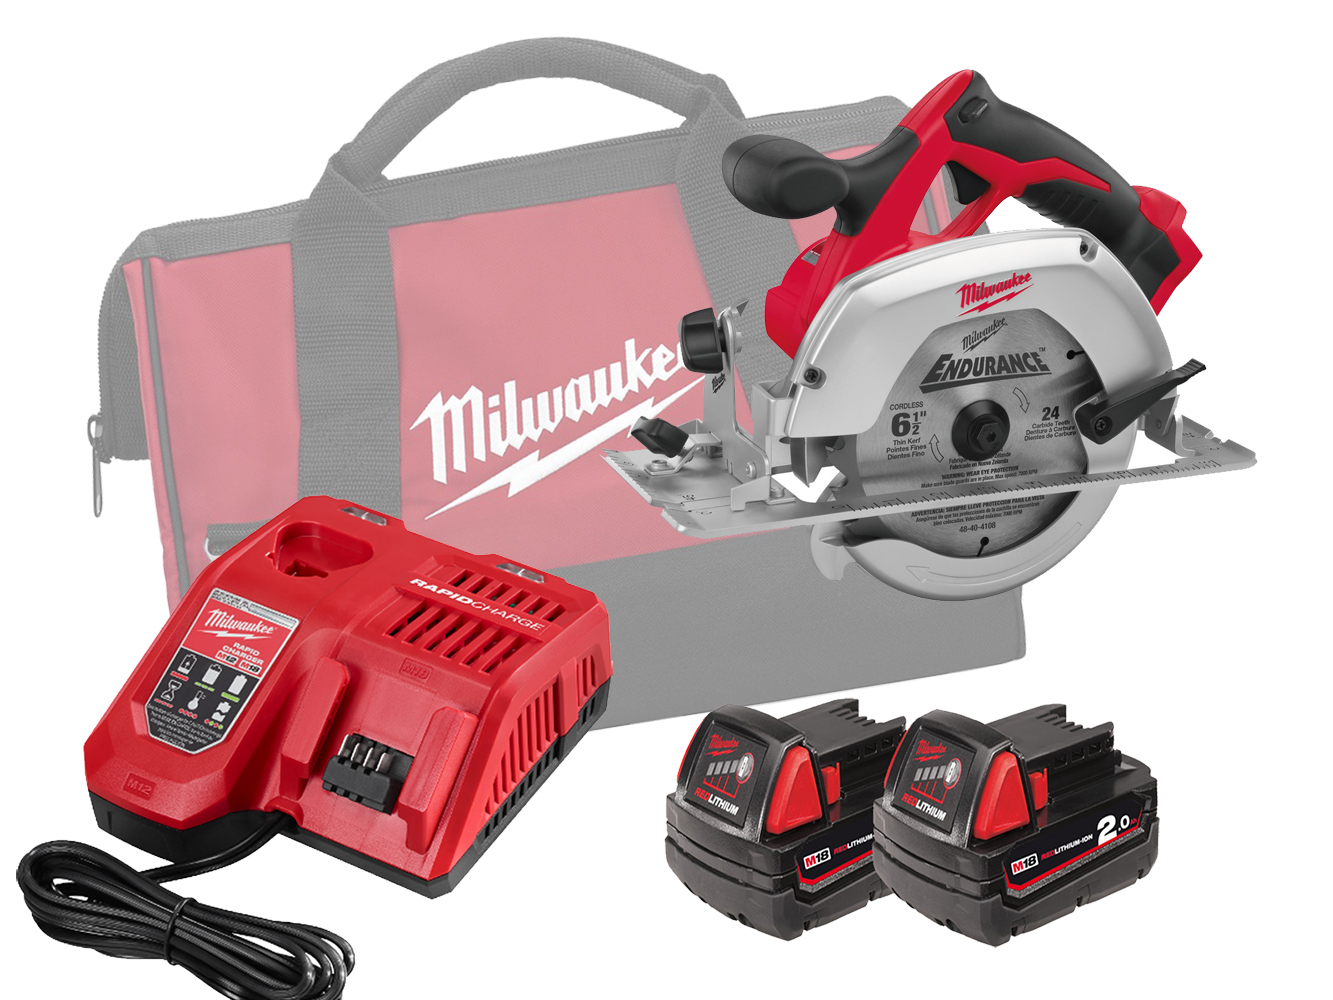 MILWAUKEE 18V HEAVY DUTY CIRCULAR SAW - HD18CS - 2.0AH PACK